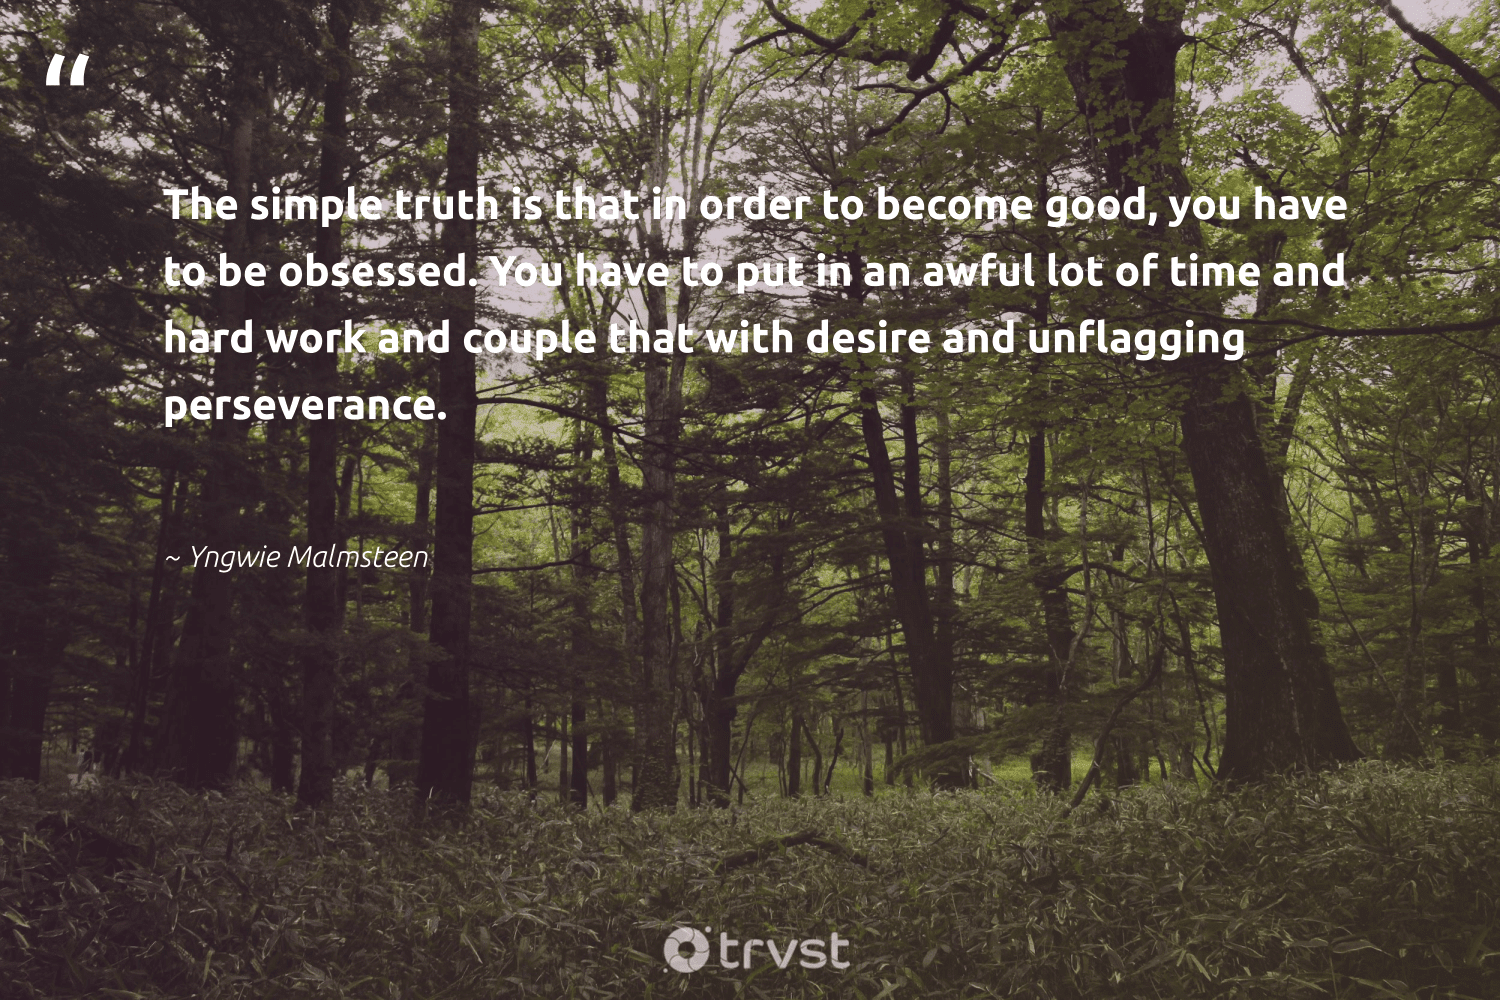 """""""The simple truth is that in order to become good, you have to be obsessed. You have to put in an awful lot of time and hard work and couple that with desire and unflagging perseverance.""""  - Yngwie Malmsteen #trvst #quotes #truth #nevergiveup #dosomething #futureofwork #changetheworld #softskills #dotherightthing #begreat #planetearthfirst #takeaction"""